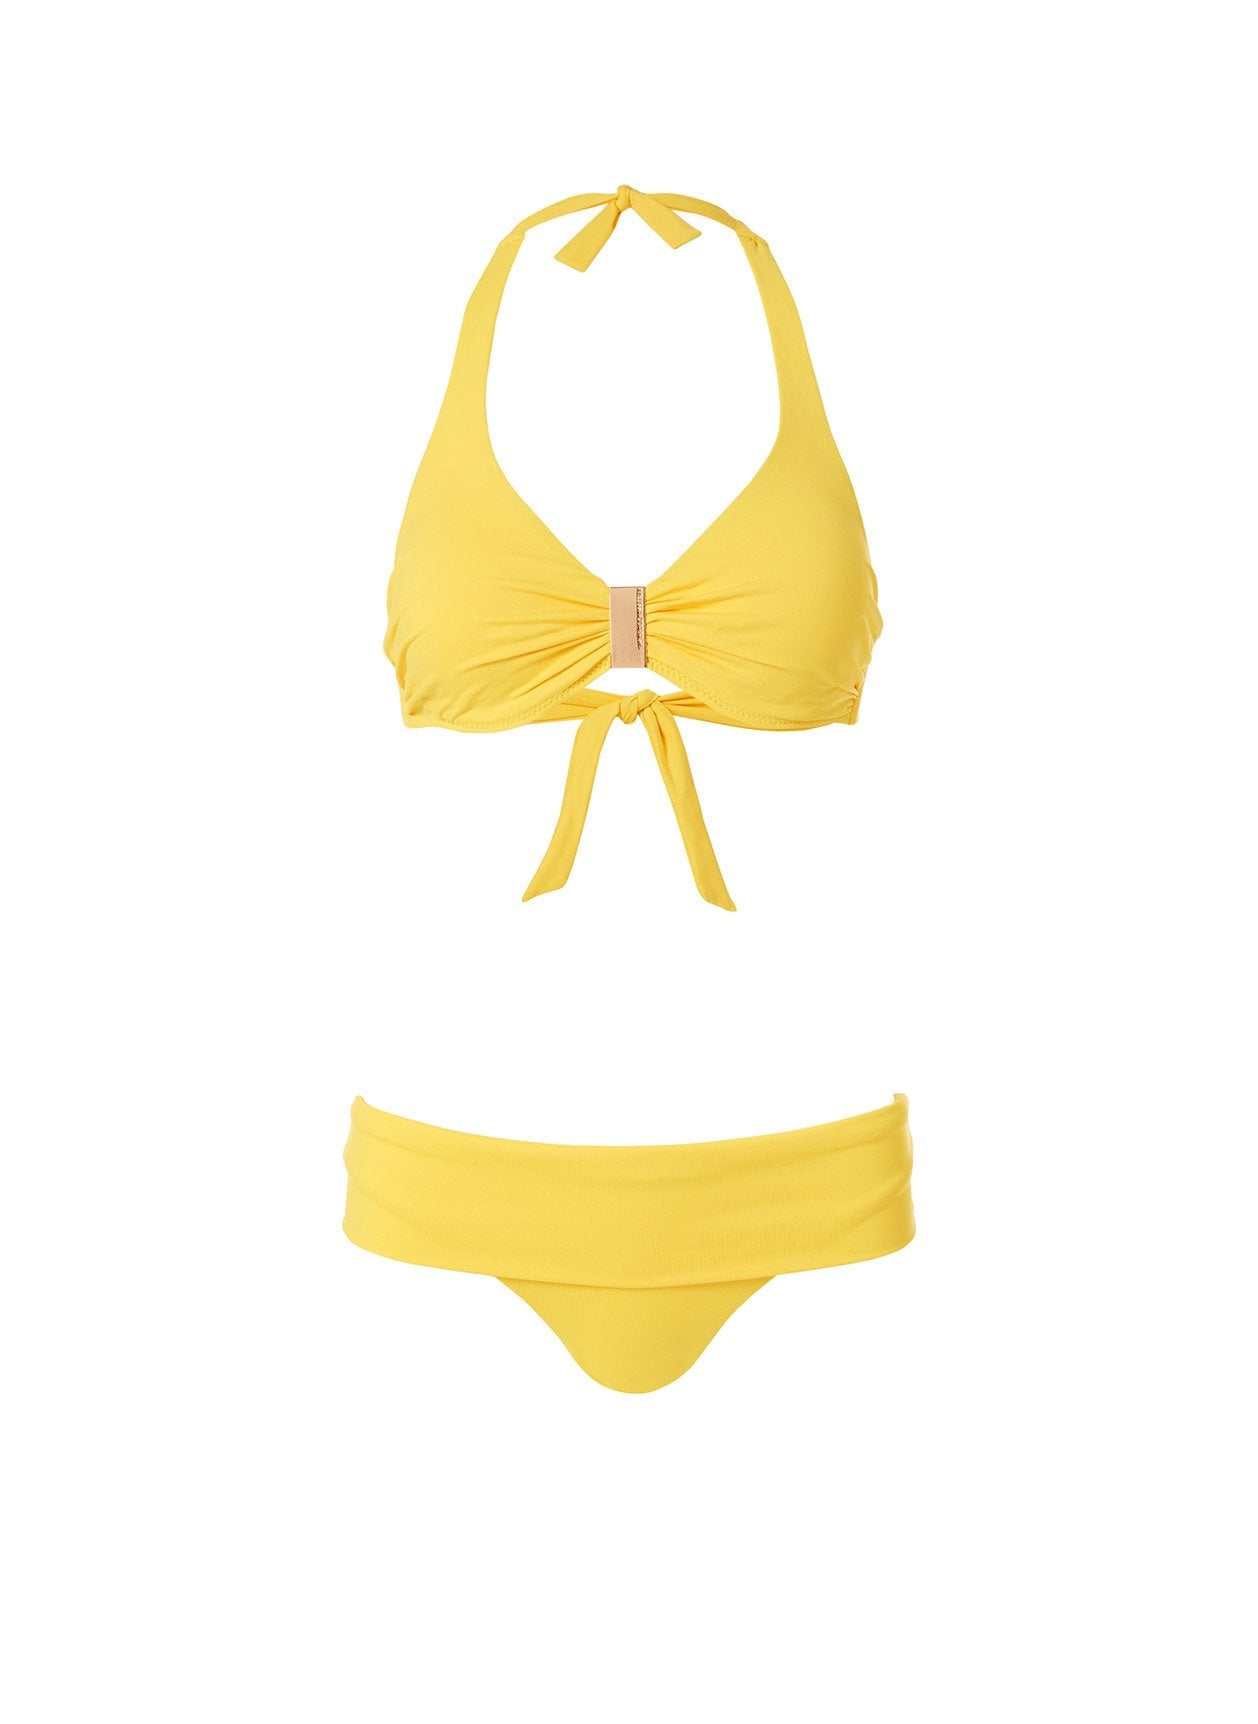 Provence Yellow Plaque Trim Supportive Halterneck Bikini 2020